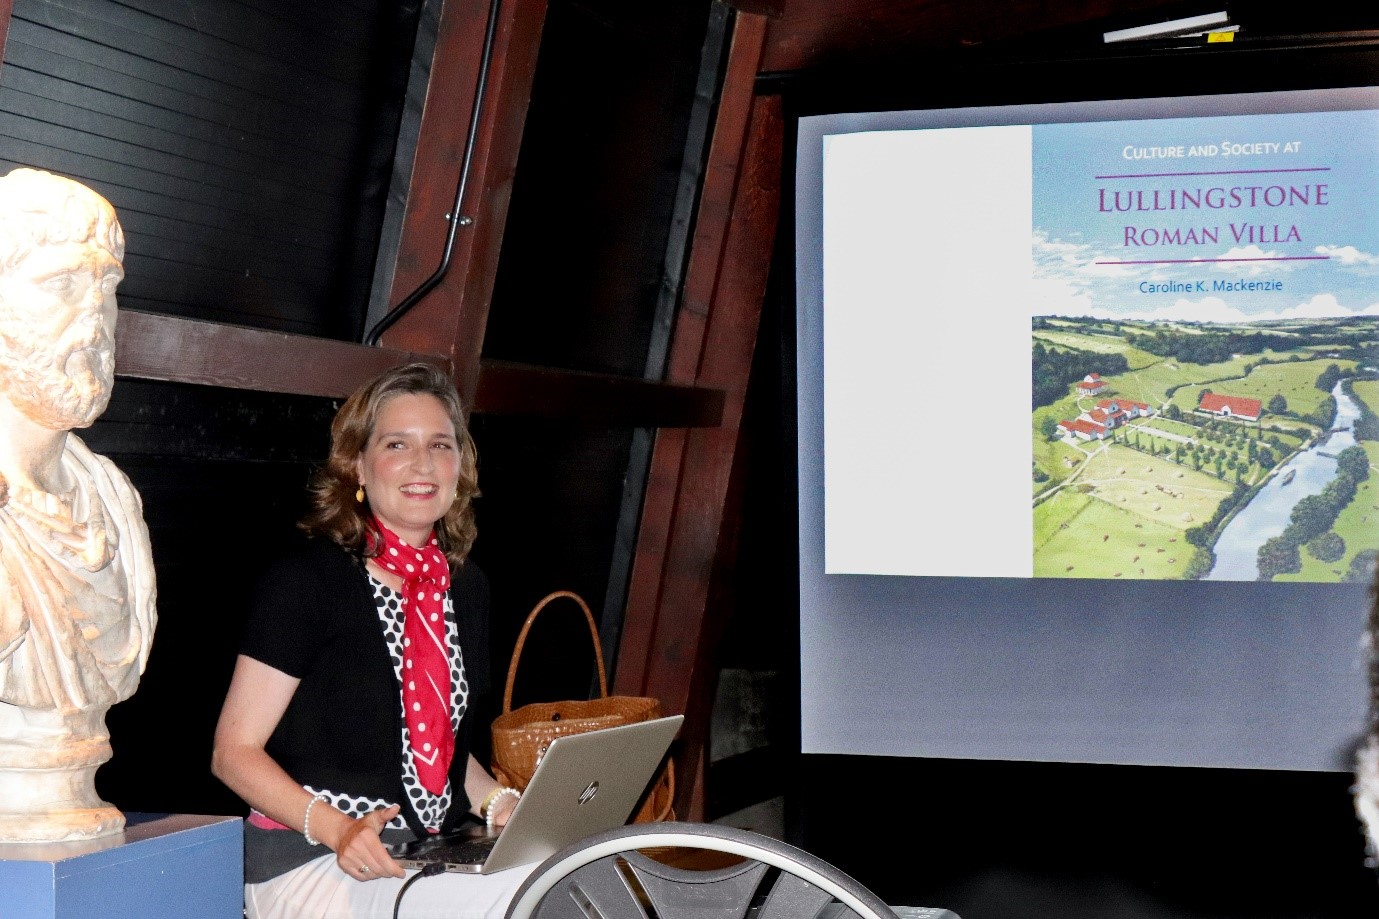 01 Caroline Mackenzie at the reunion of the original diggers at Lullingstone Roman Villa, July 2019.jpg